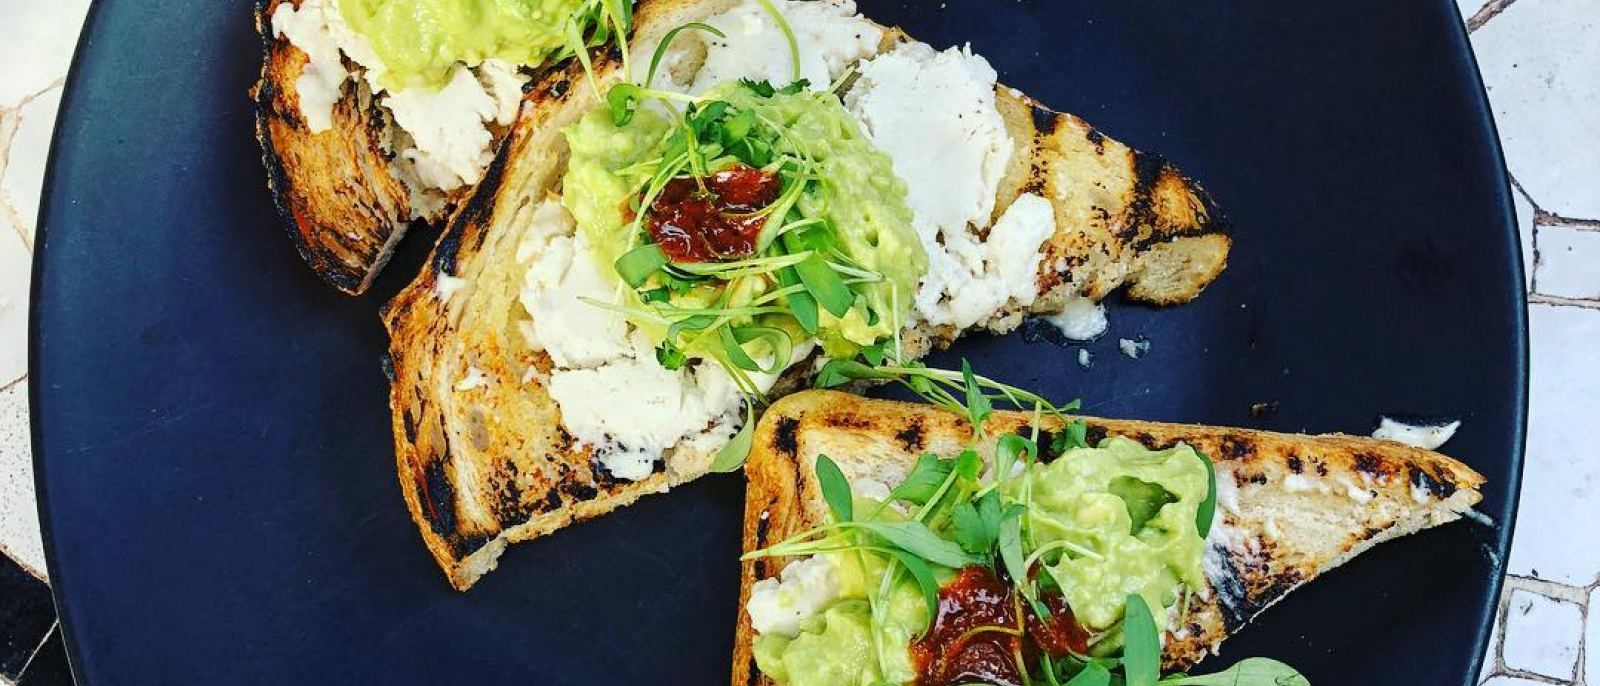 Avocado toast at Gracias Madre in West Hollywood | Photo: @vegandoctor, Instagram